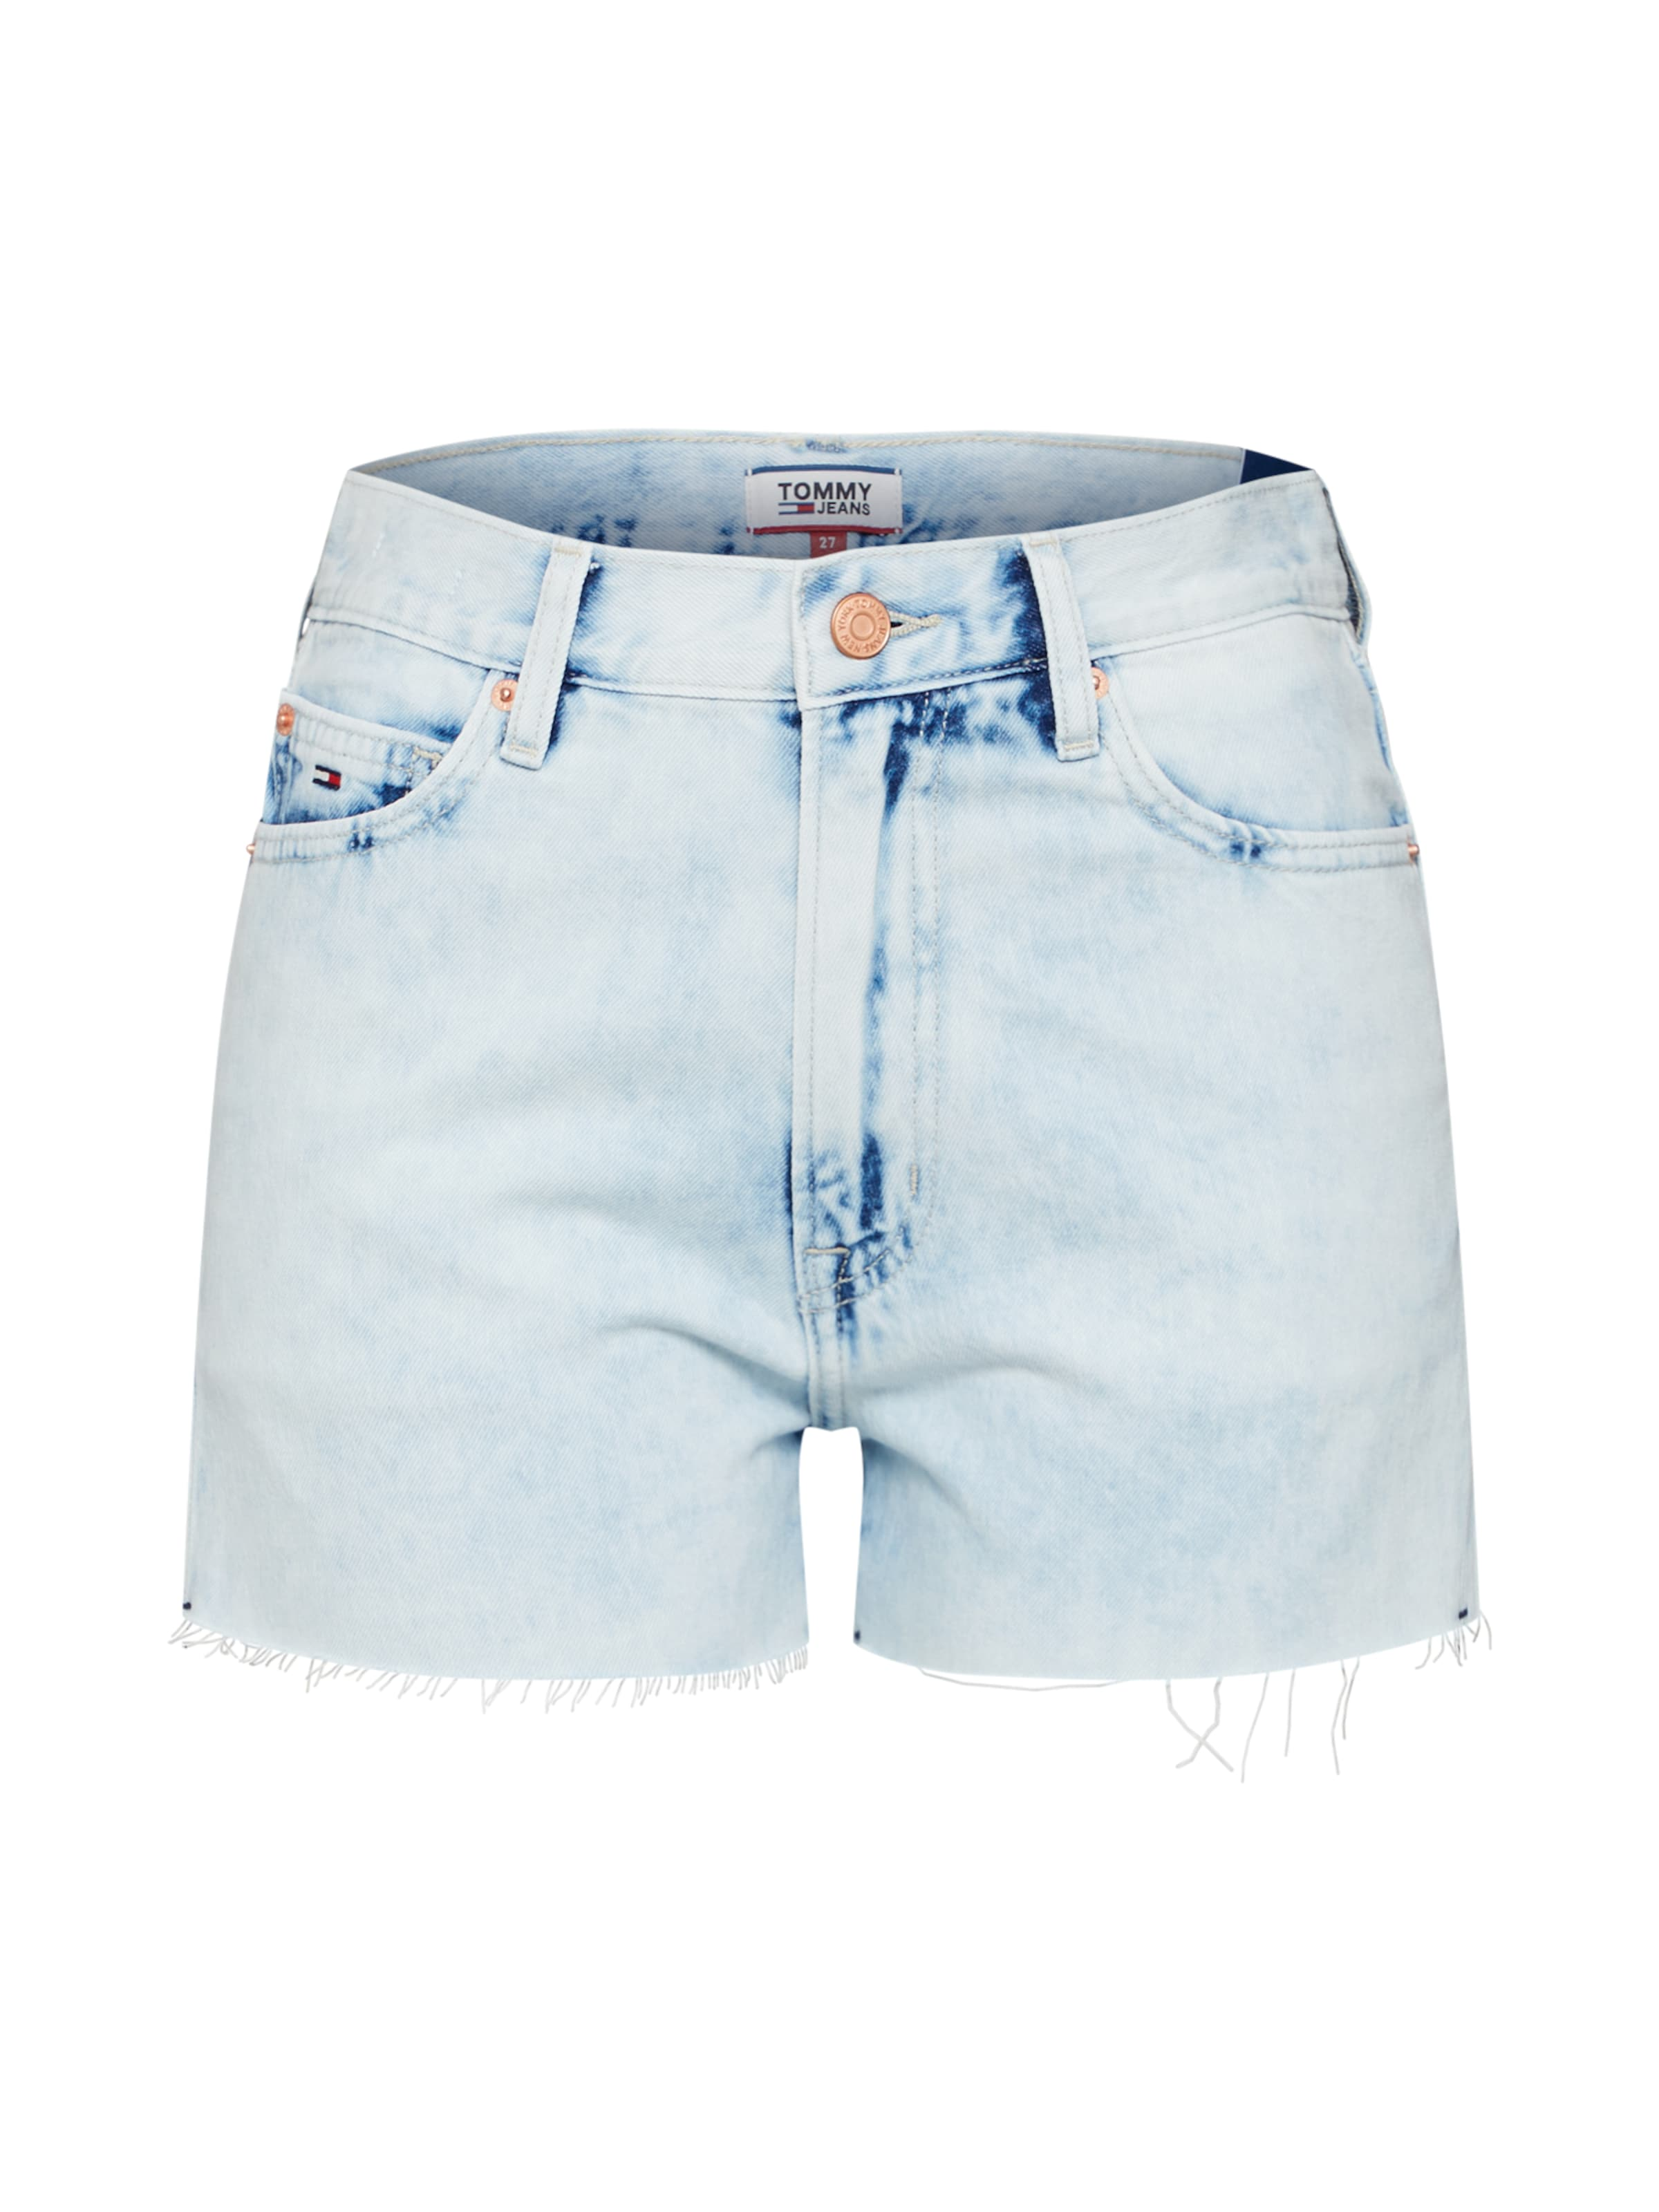 DenimRot Weiß Tommy In Blue Jeans Jeansshorts yYfgI7vb6